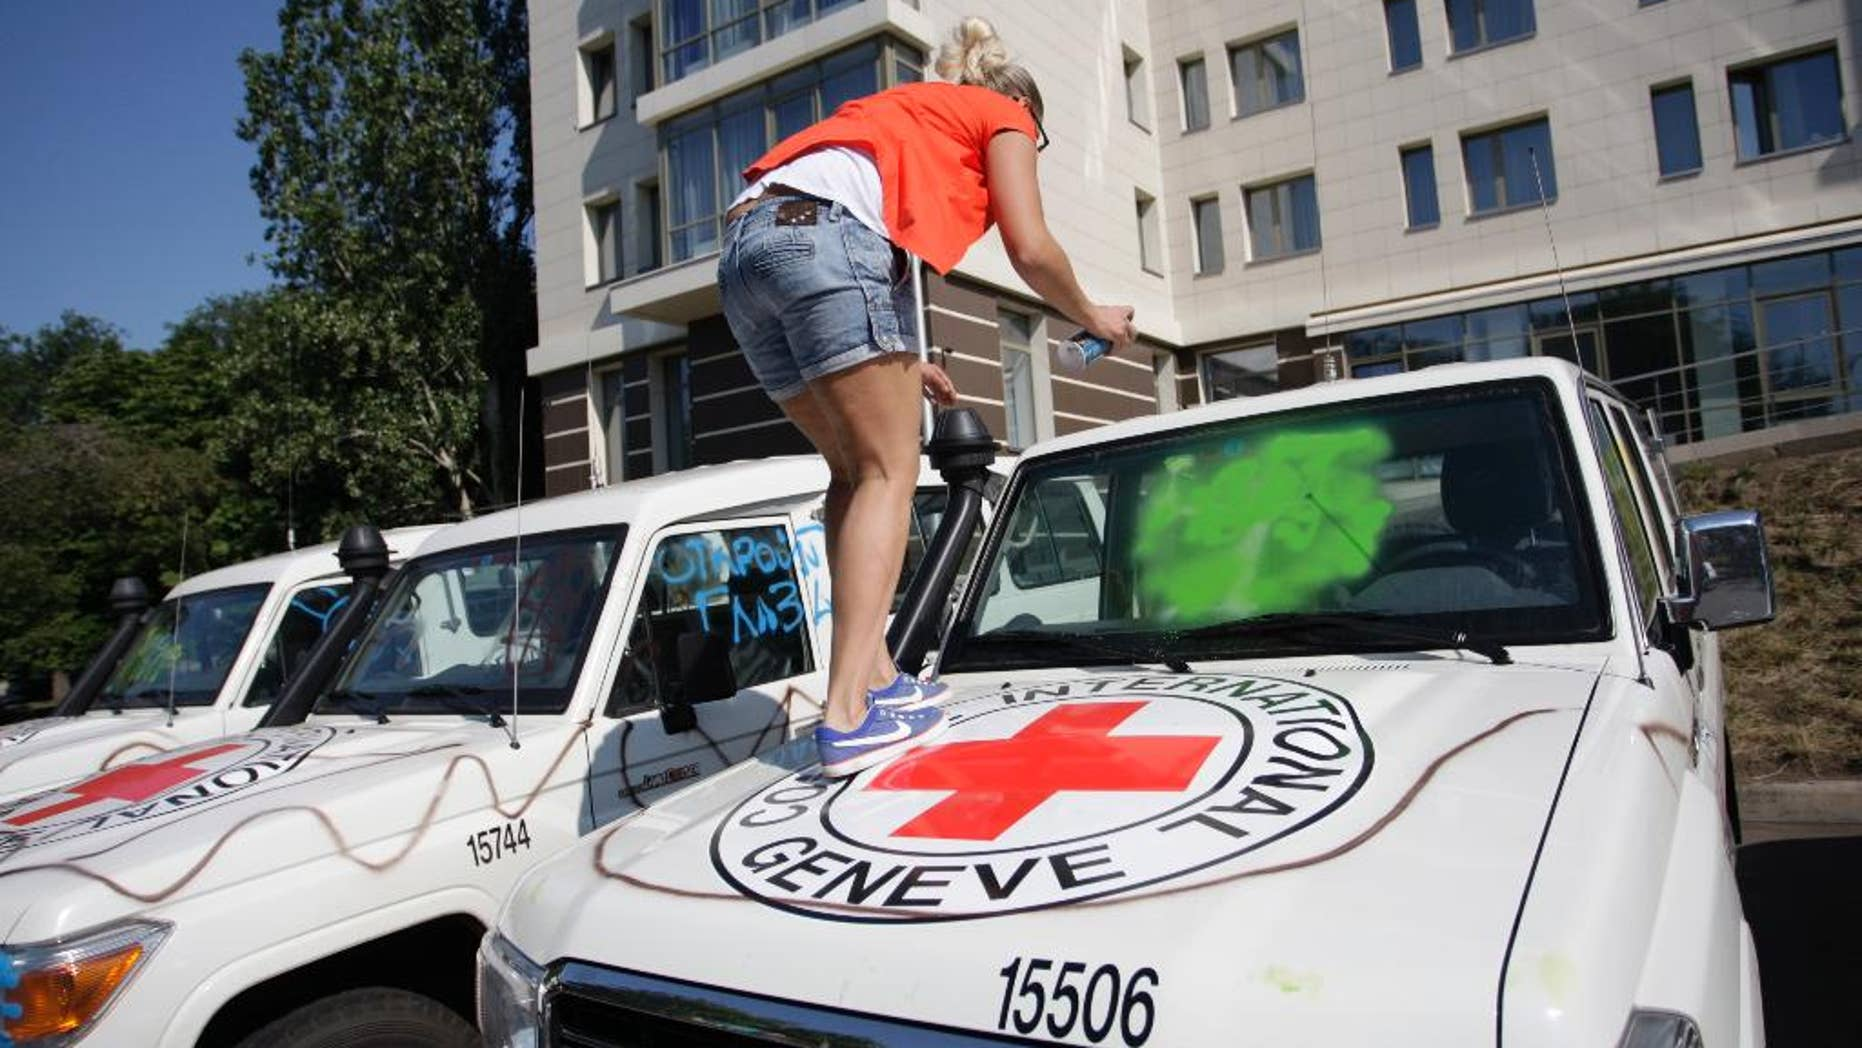 A demonstrator uses spray-paint to deface the windshield of a car of the OSCE and the International Committee of the Red Cross during a protest in Donetsk, eastern Ukraine, Thursday, July  23, 2015. Observers at the Organization for Security and Cooperation and Security in Europe say protesters in rebel-controlled Donetsk vandalized their cars on Thursday showed several dozen protesters outside the hotel where OSCE observers were staying. Some of them, young men wearing sunglasses, spray-painted the cars of the OSCE and the International Committee of the Red Cross in the parking lot.  (AP Photo/Alexander Ermochenko)